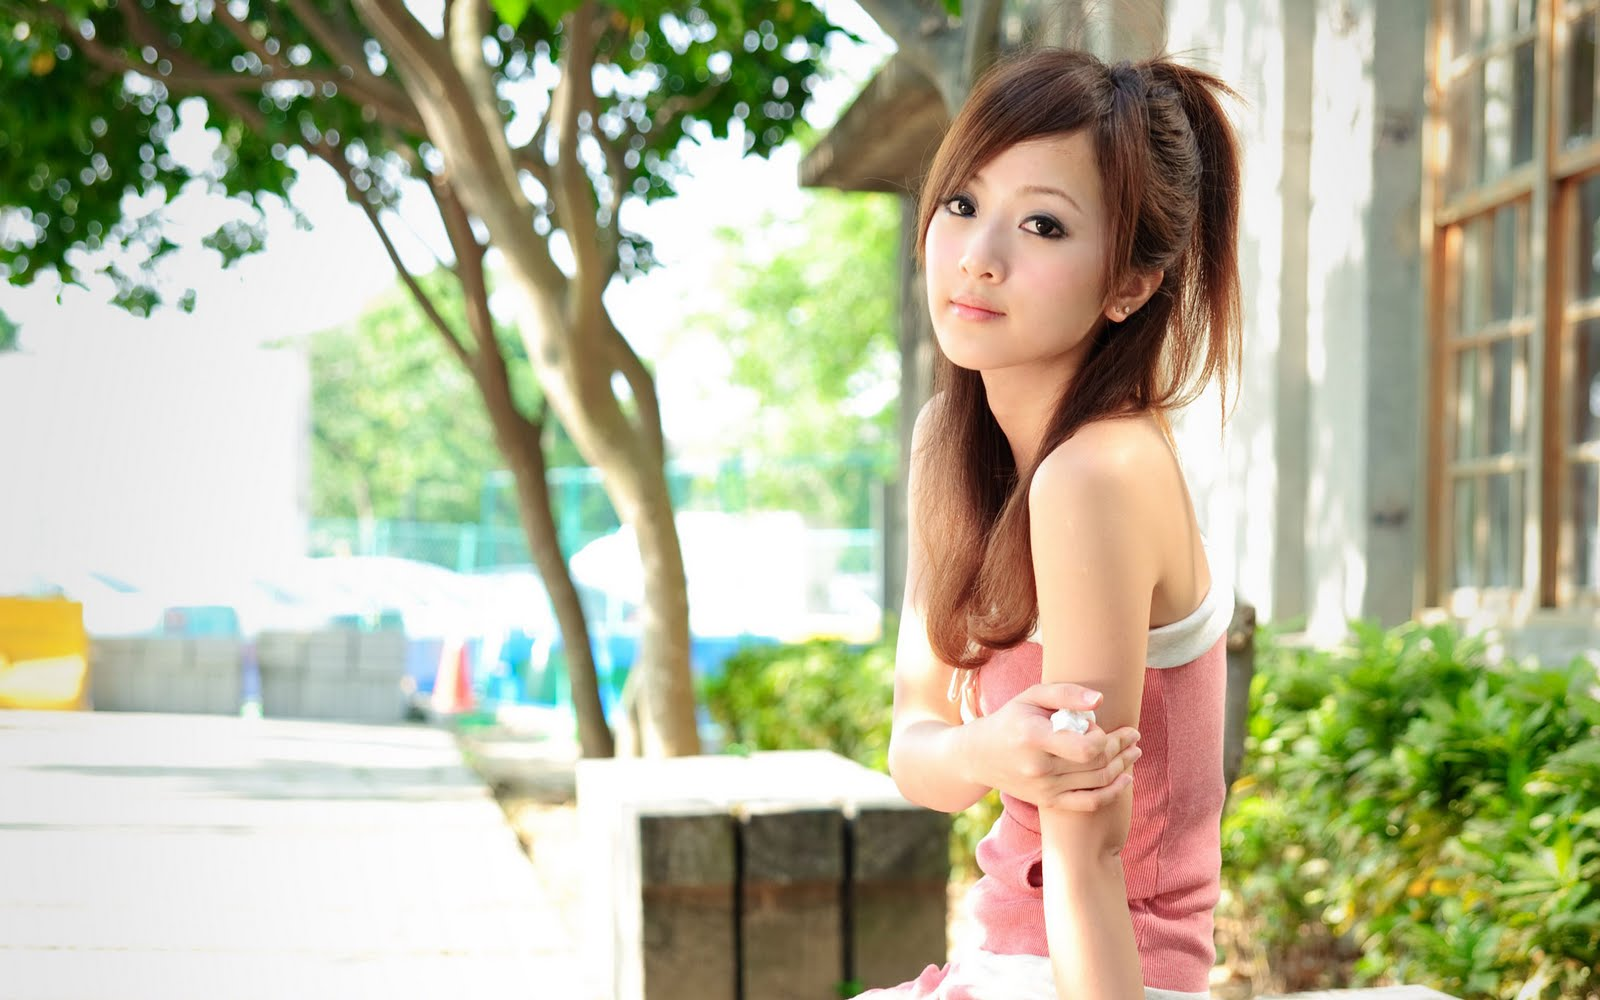 stephens single asian girls Asiandate is a premium international dating site that connects people from around the world with meet caring girl at #asiandate 24 12 see all asian date.